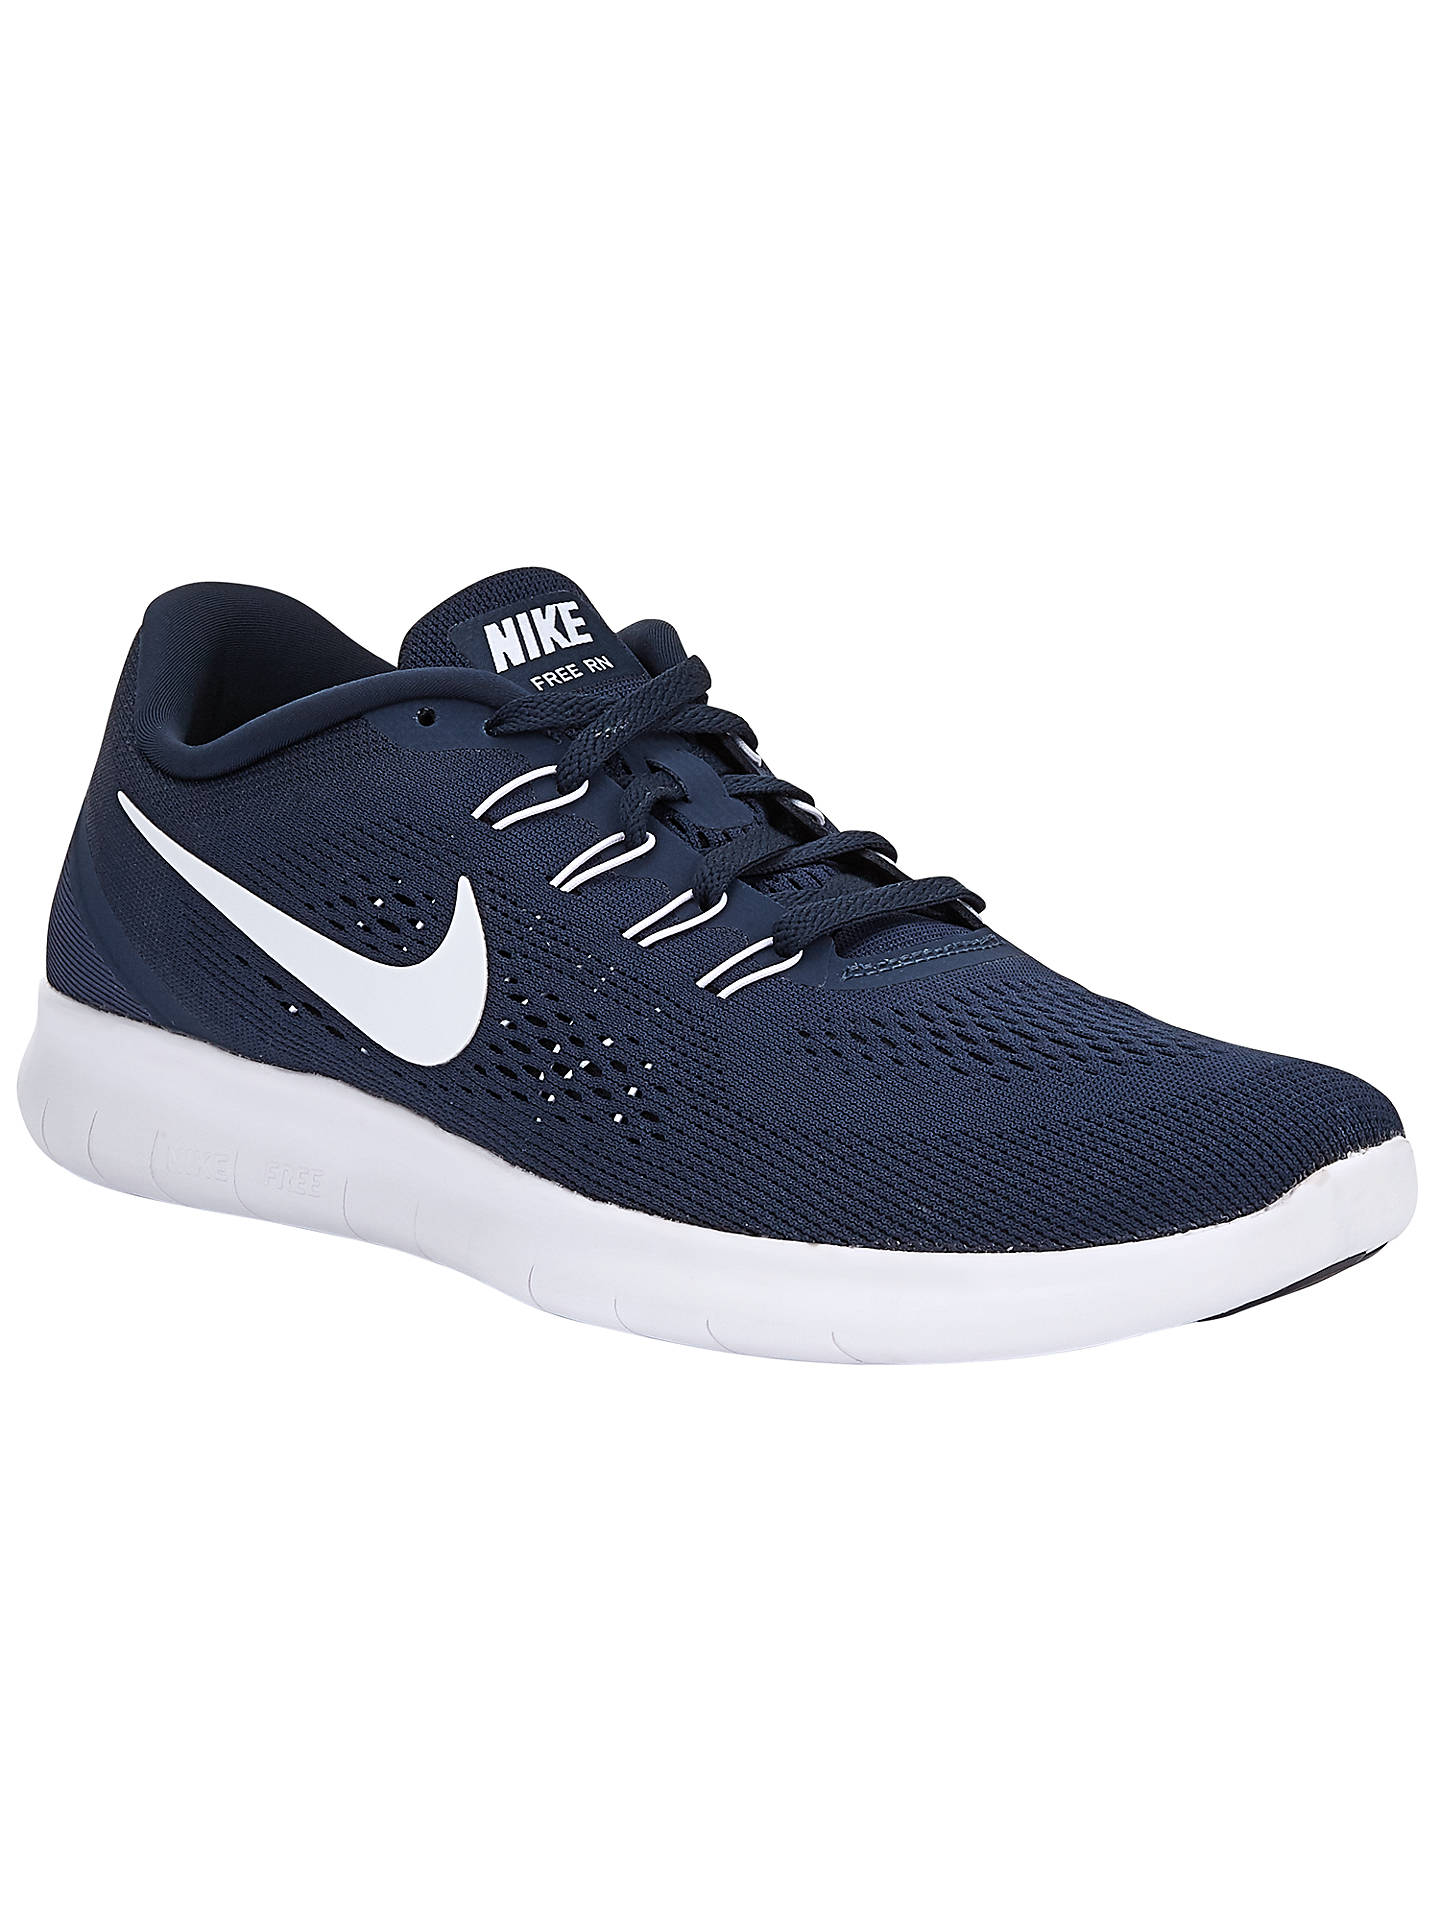 a816911978373 Buy Nike Free RN Men s Running Shoes